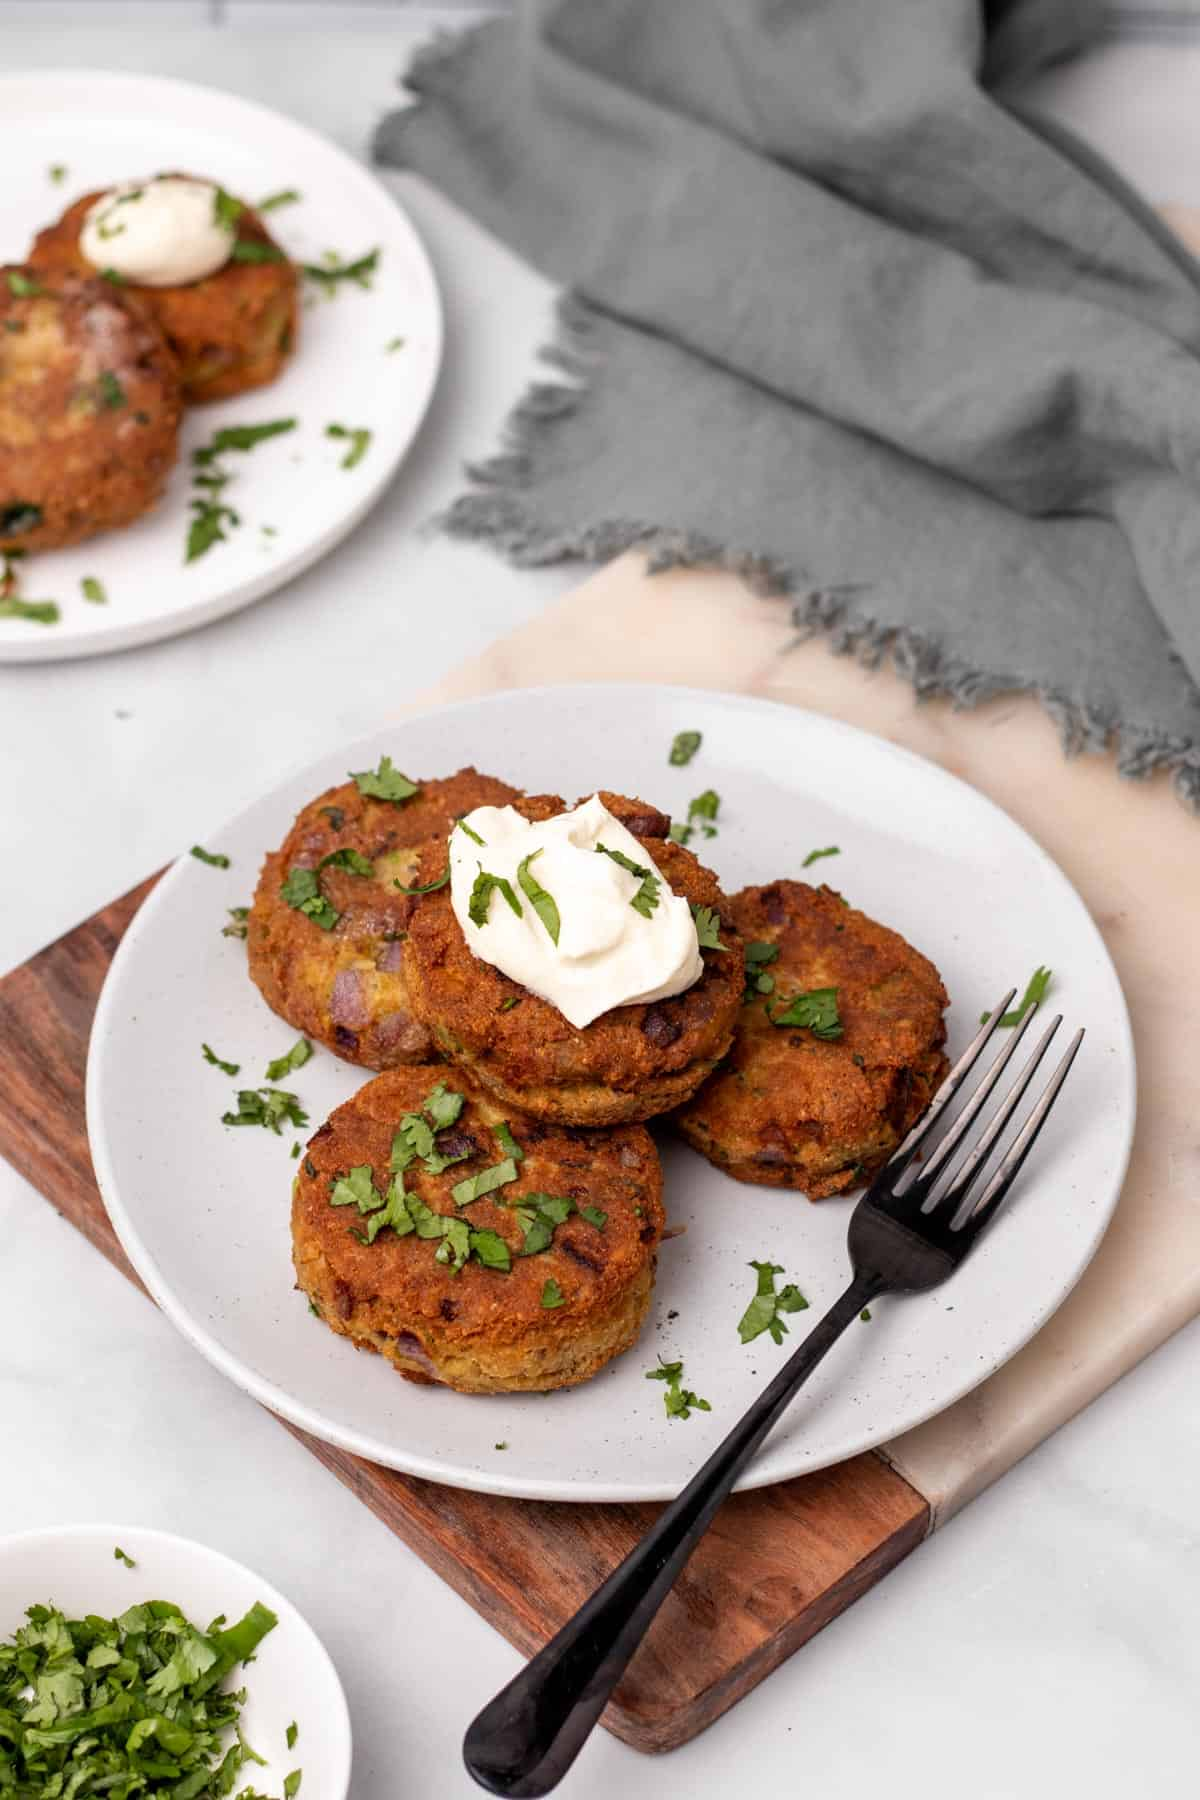 Four keto salmon patties on a white plate with a fork, garnished with chopped parsley and a dollop of sour cream